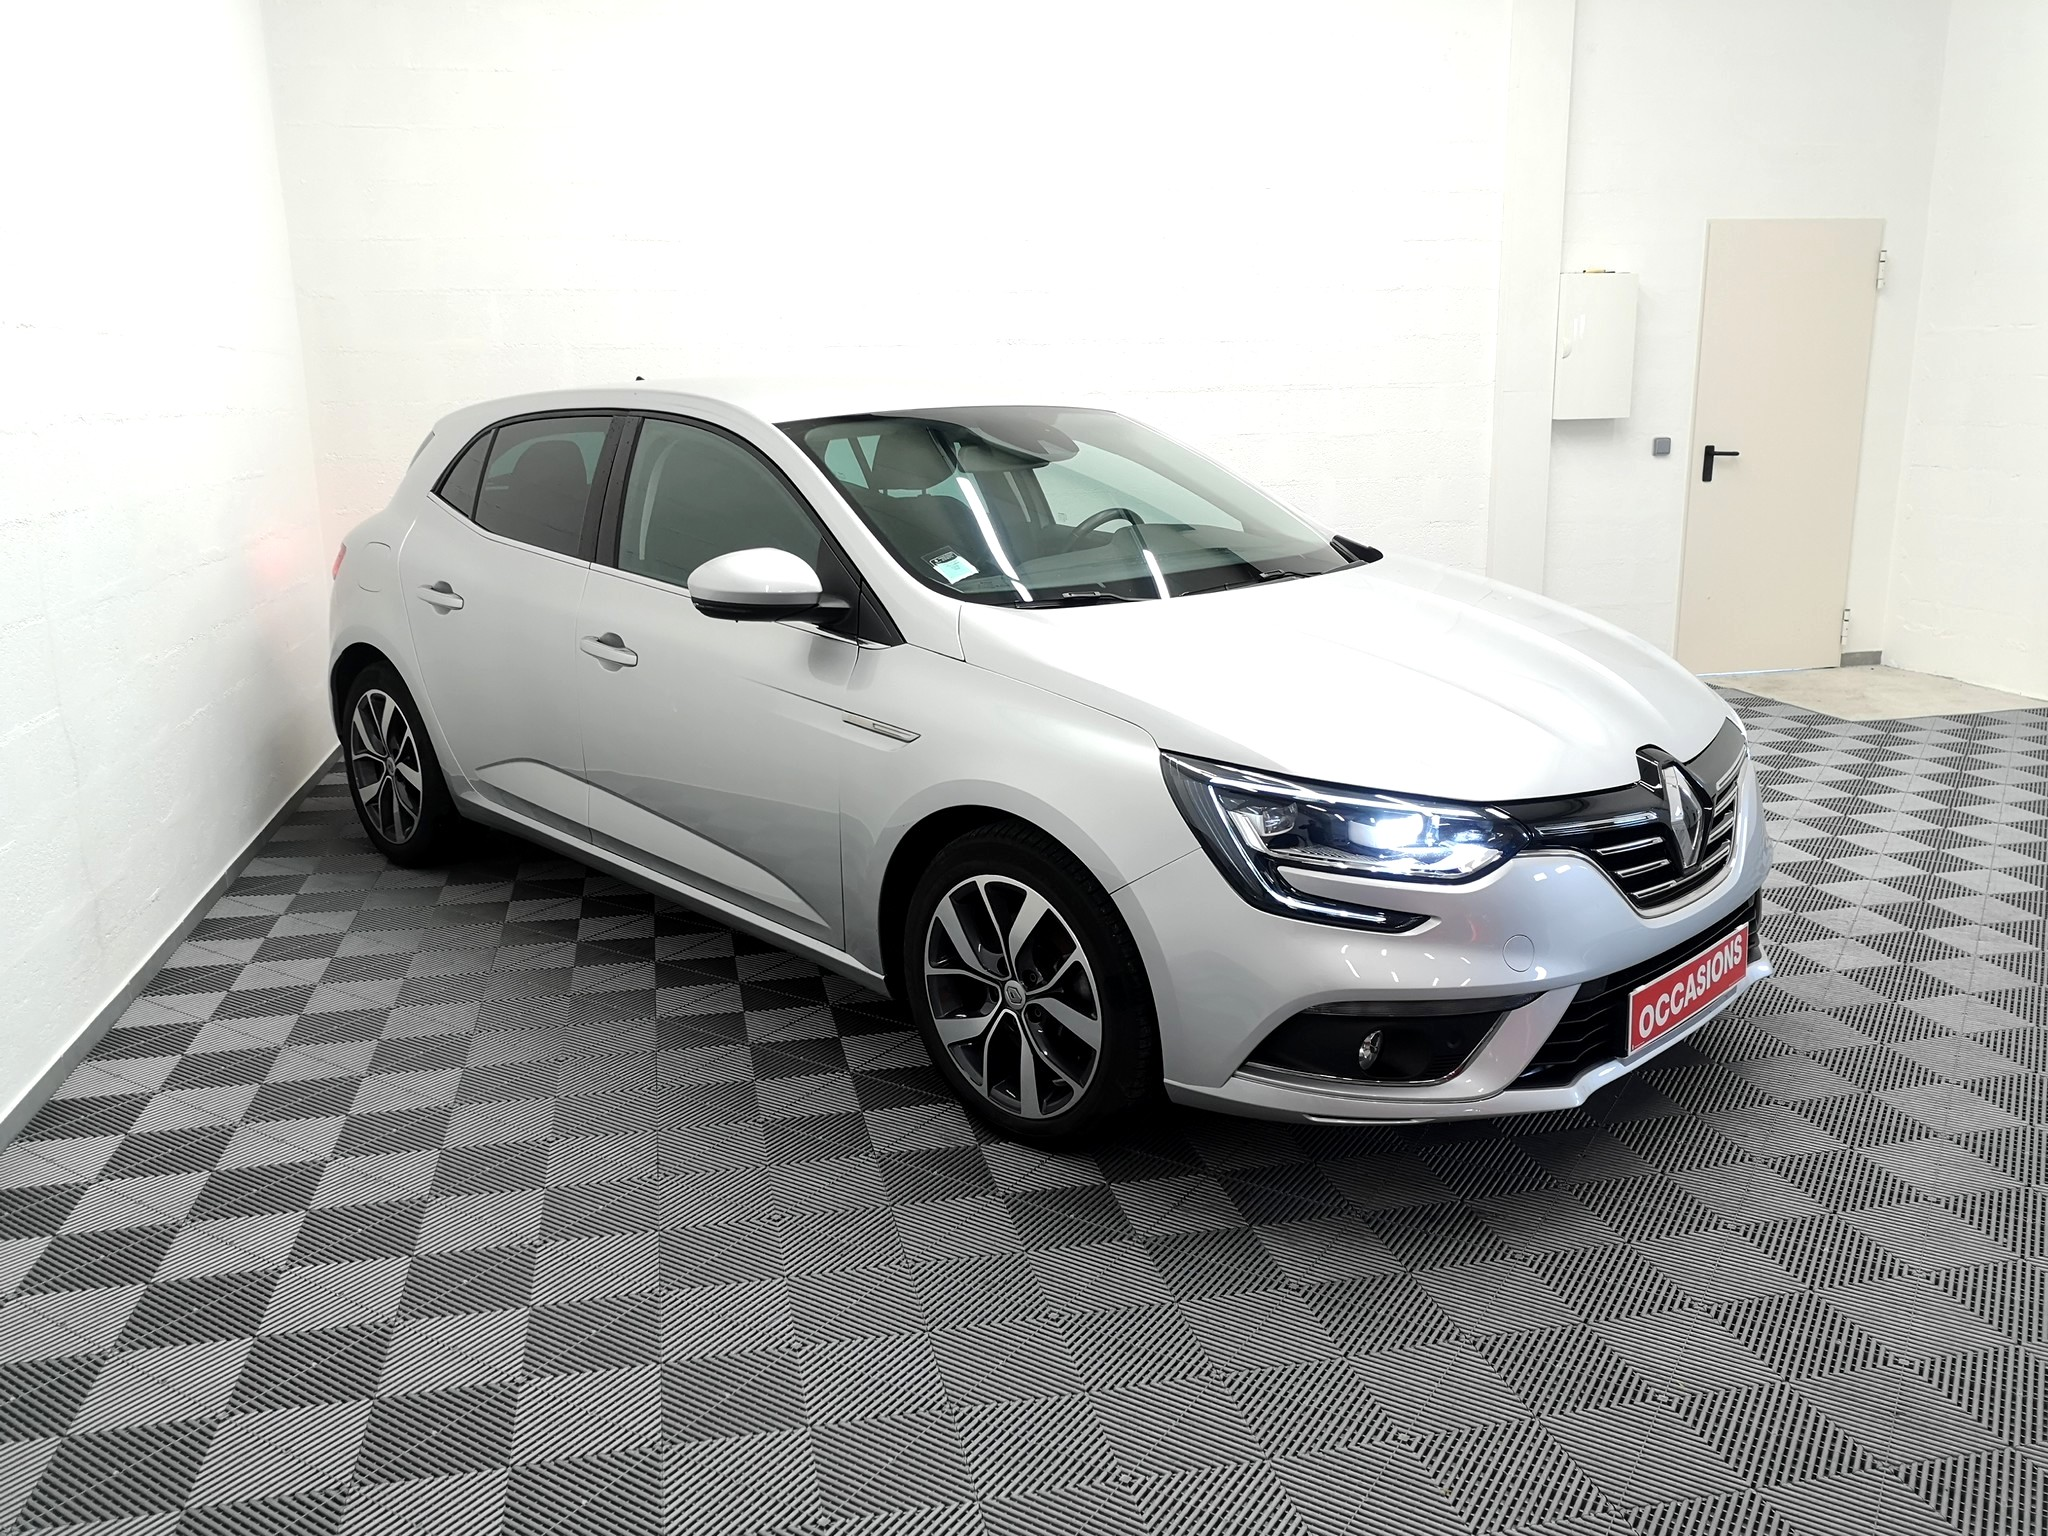 RENAULT MEGANE IV BERLINE 2016 à 14900 € - Photo n°2